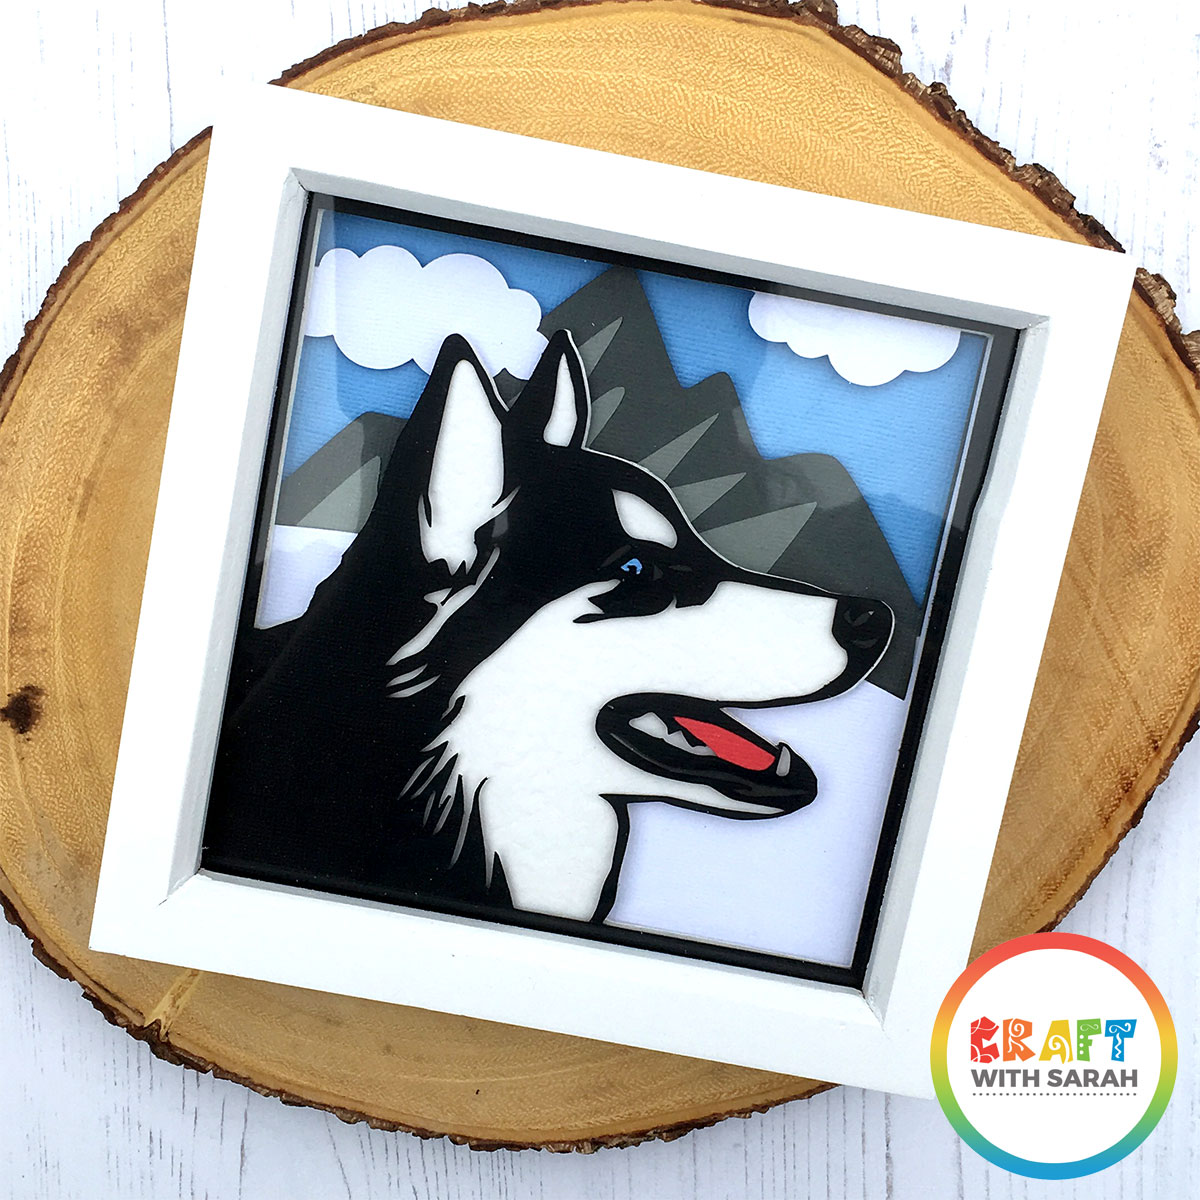 Make your own husky shadow box wall art with this free SVG for Cricut and Silhouette machines